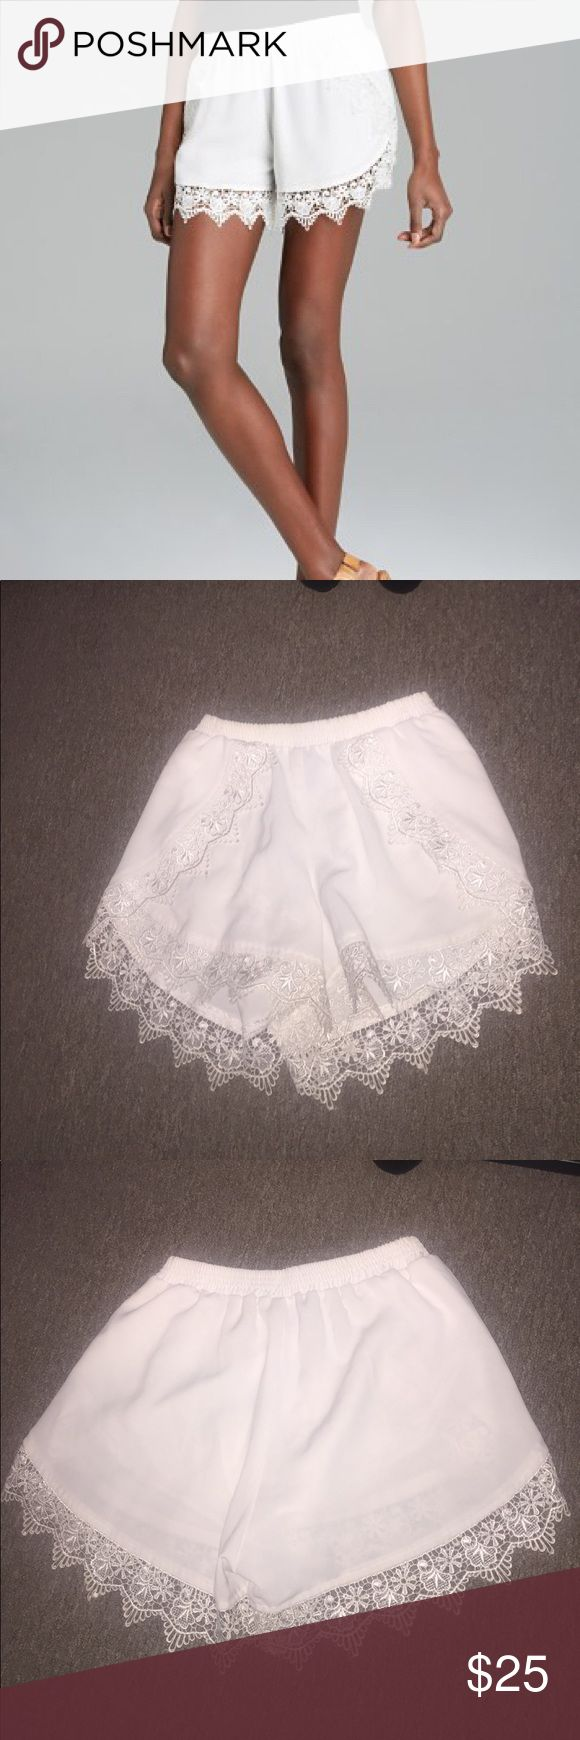 Aqua Lace trim shorts from Bloomingdales White lace trimmed stretch  shorts.  The inside is lined to avoid see through white bottoms. Aqua Shorts